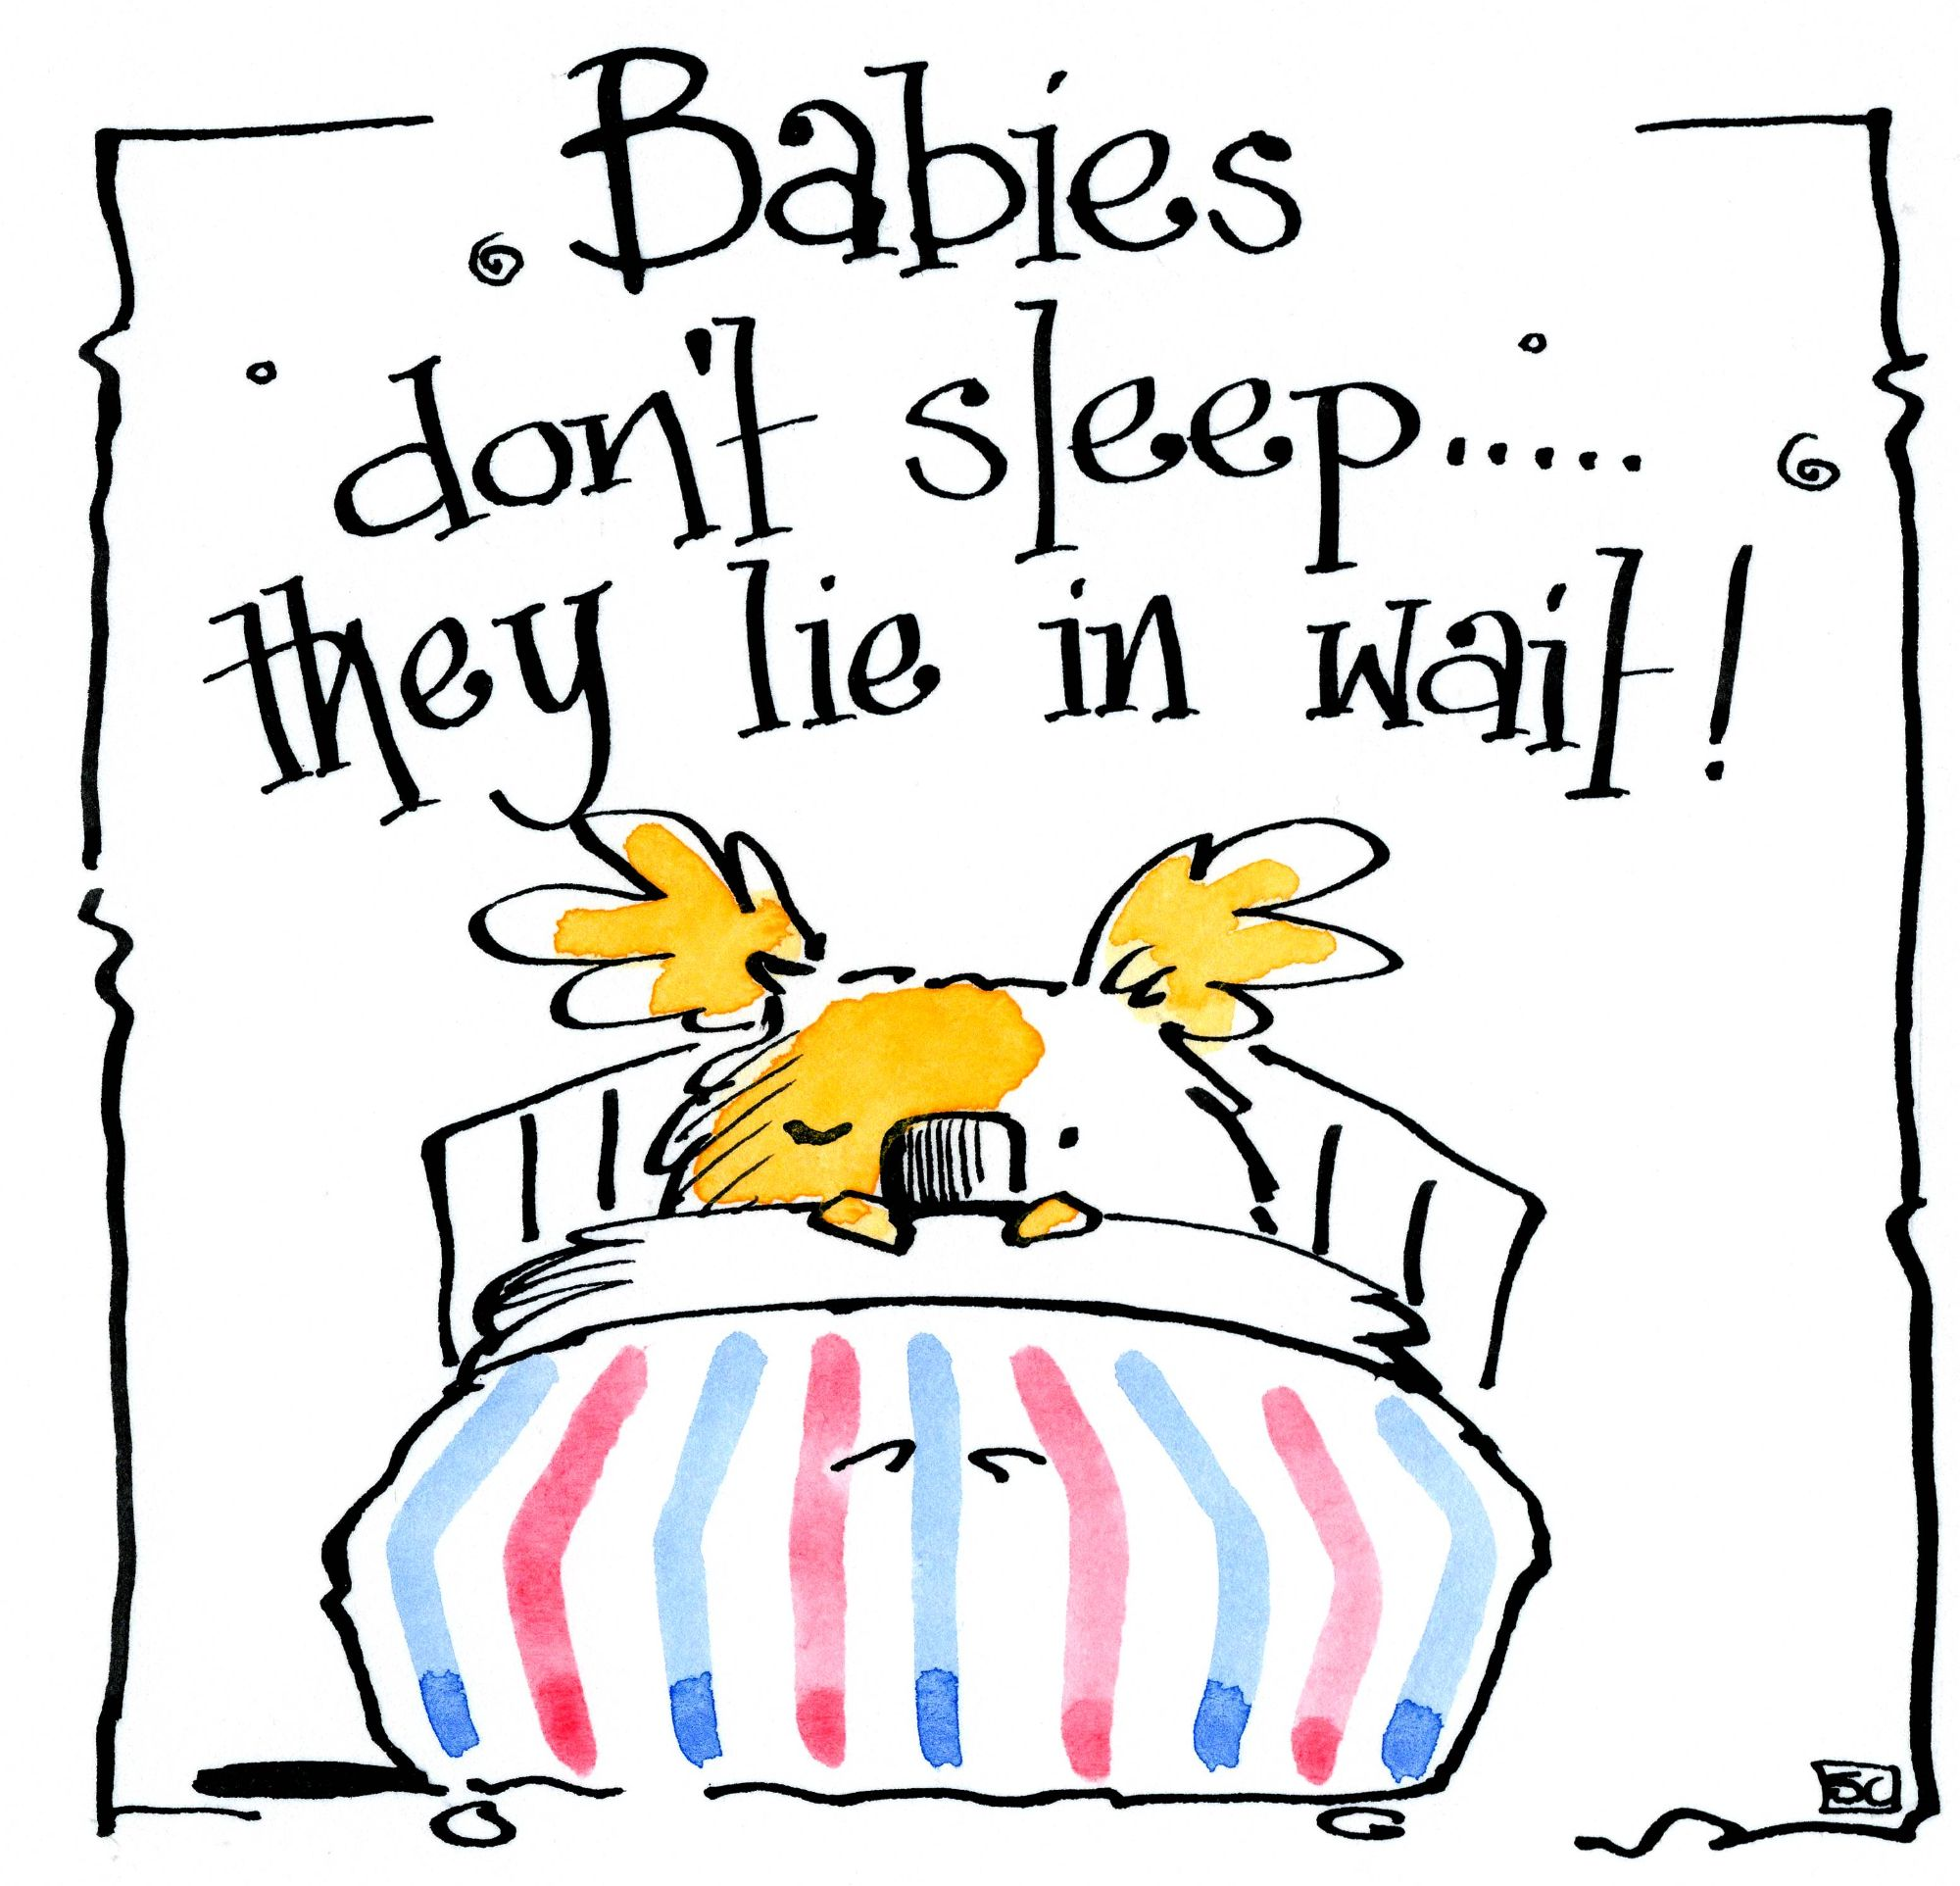 New Baby Card with cartoon bear cub in bed with caption Babies Don't Sleep They Lie In Wait